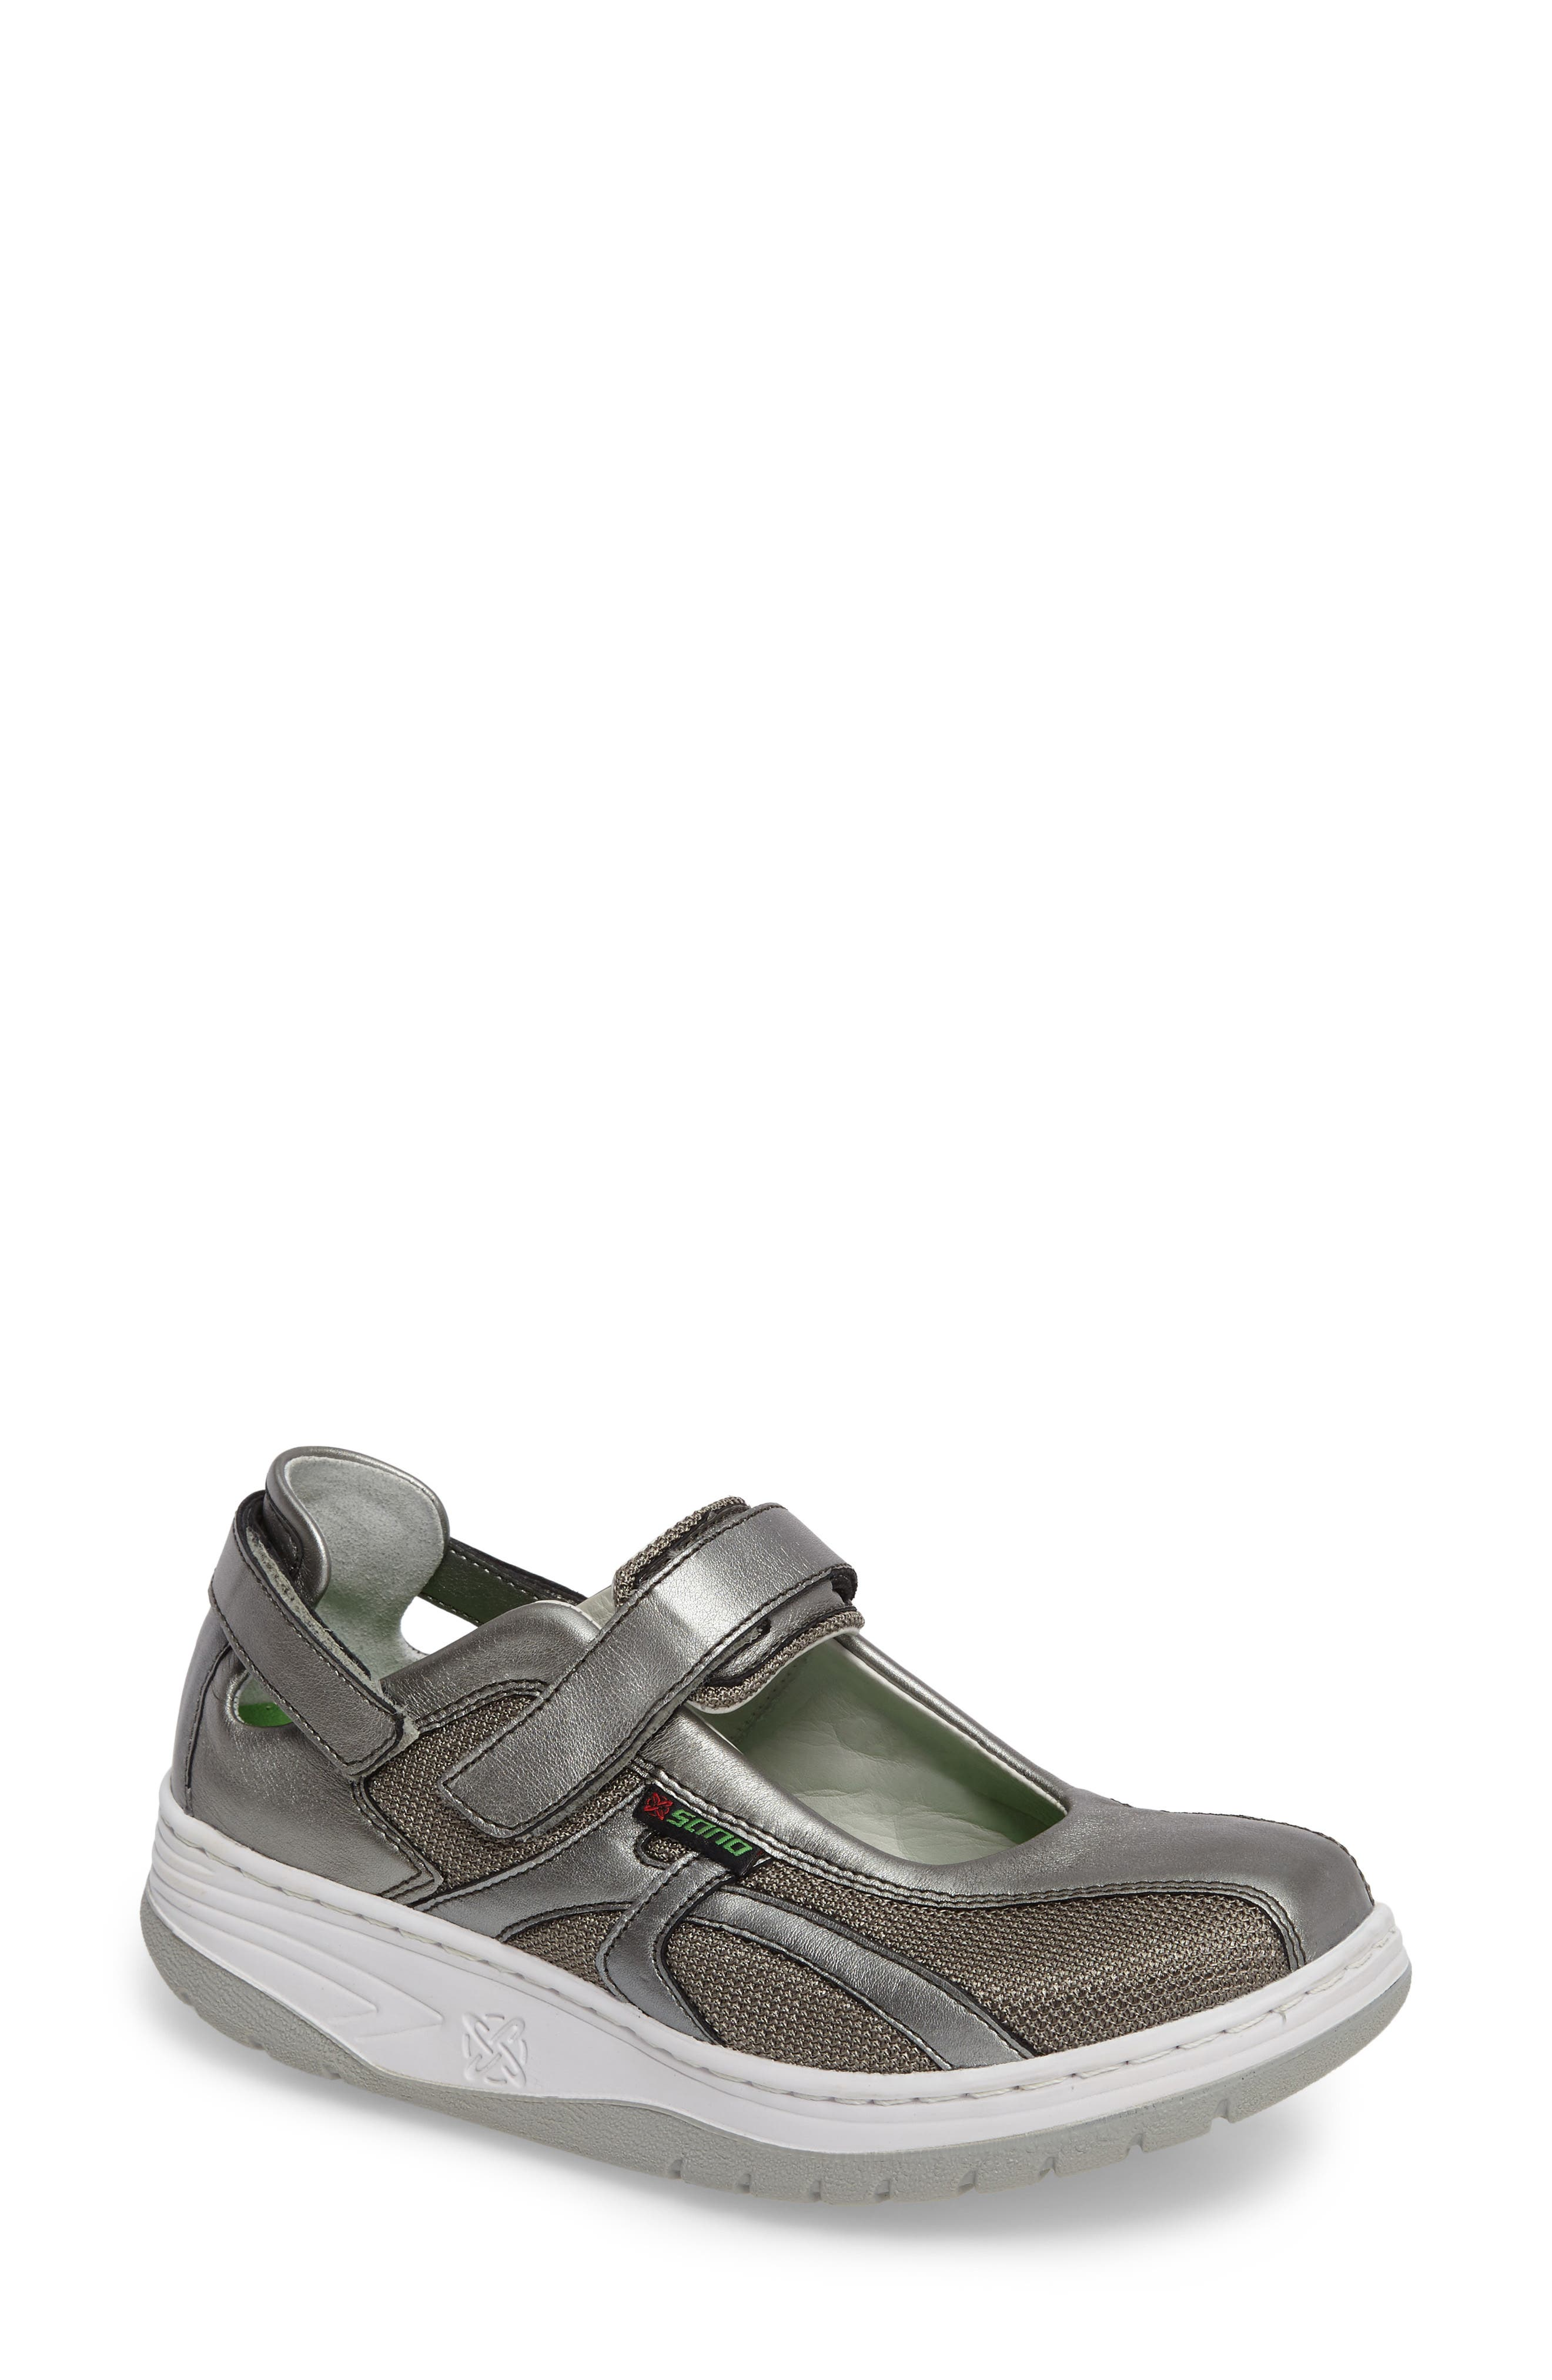 Sano by Mephisto 'Excess' Walking Shoe,                             Alternate thumbnail 4, color,